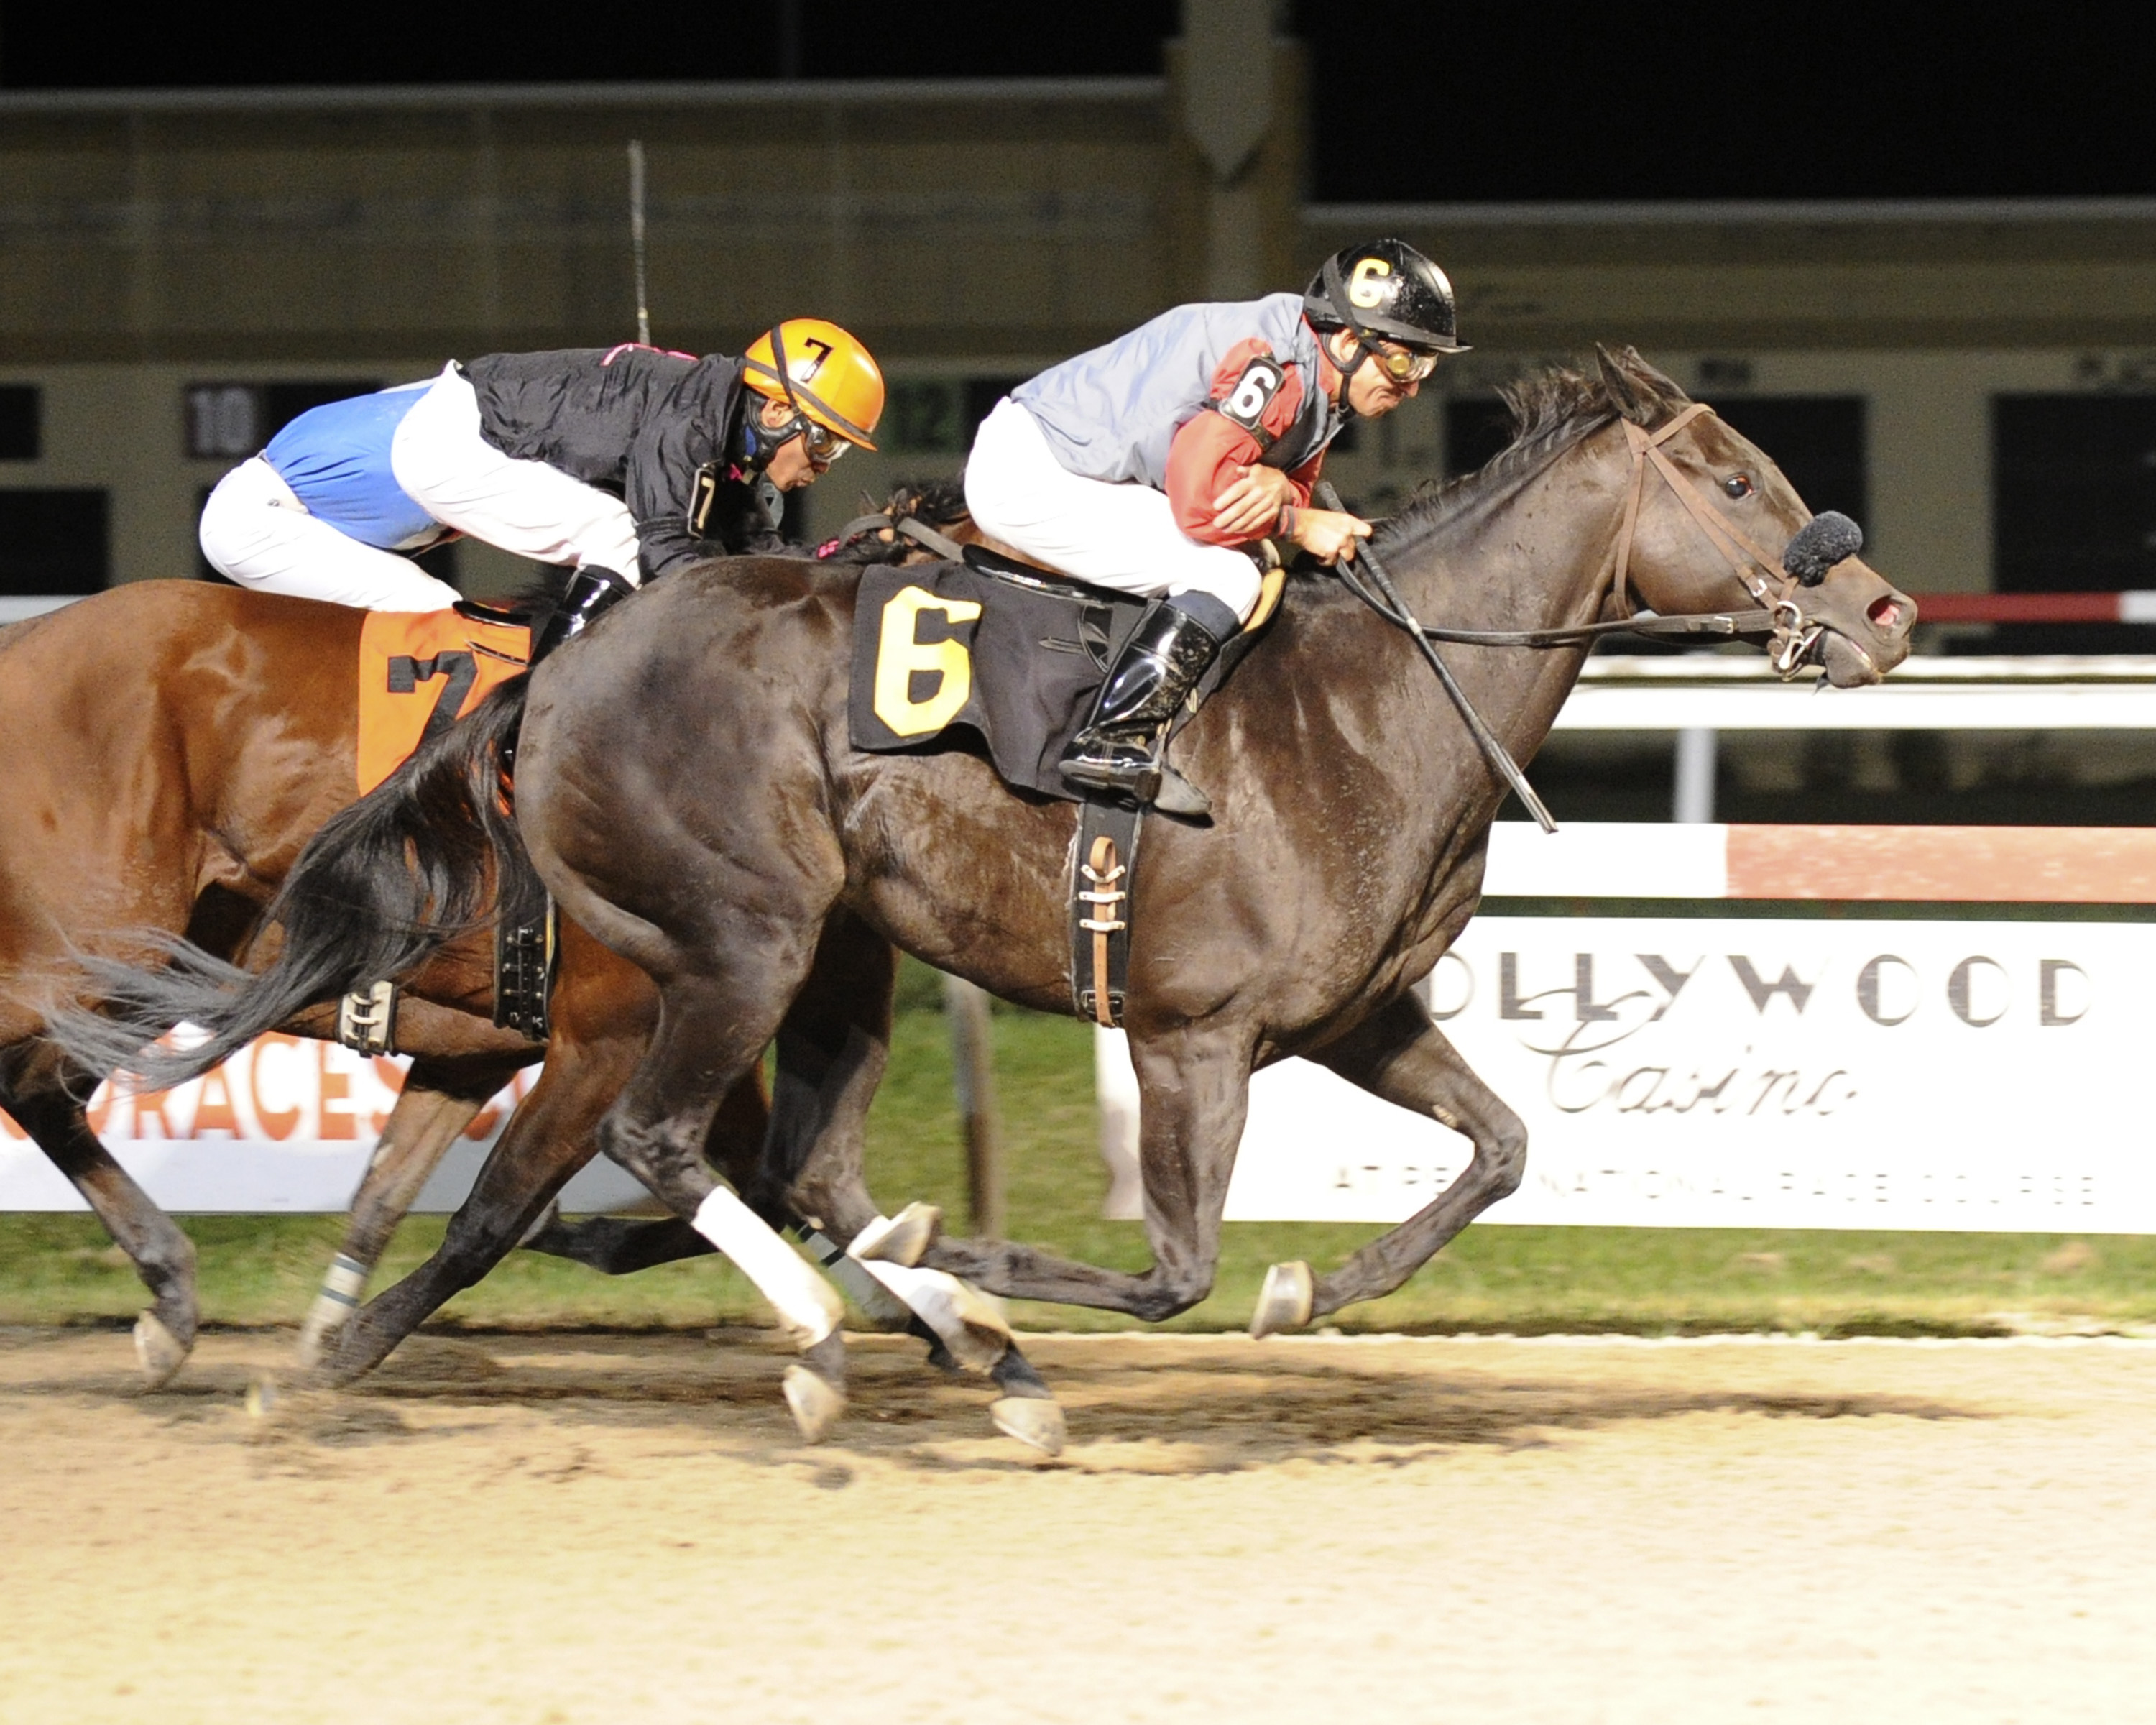 Town Leader, bred by Mr. & Mrs. Bertram Firestone, has won 2 at Laurel & 2 at Charles Town this year. Photo by Coady Photography.